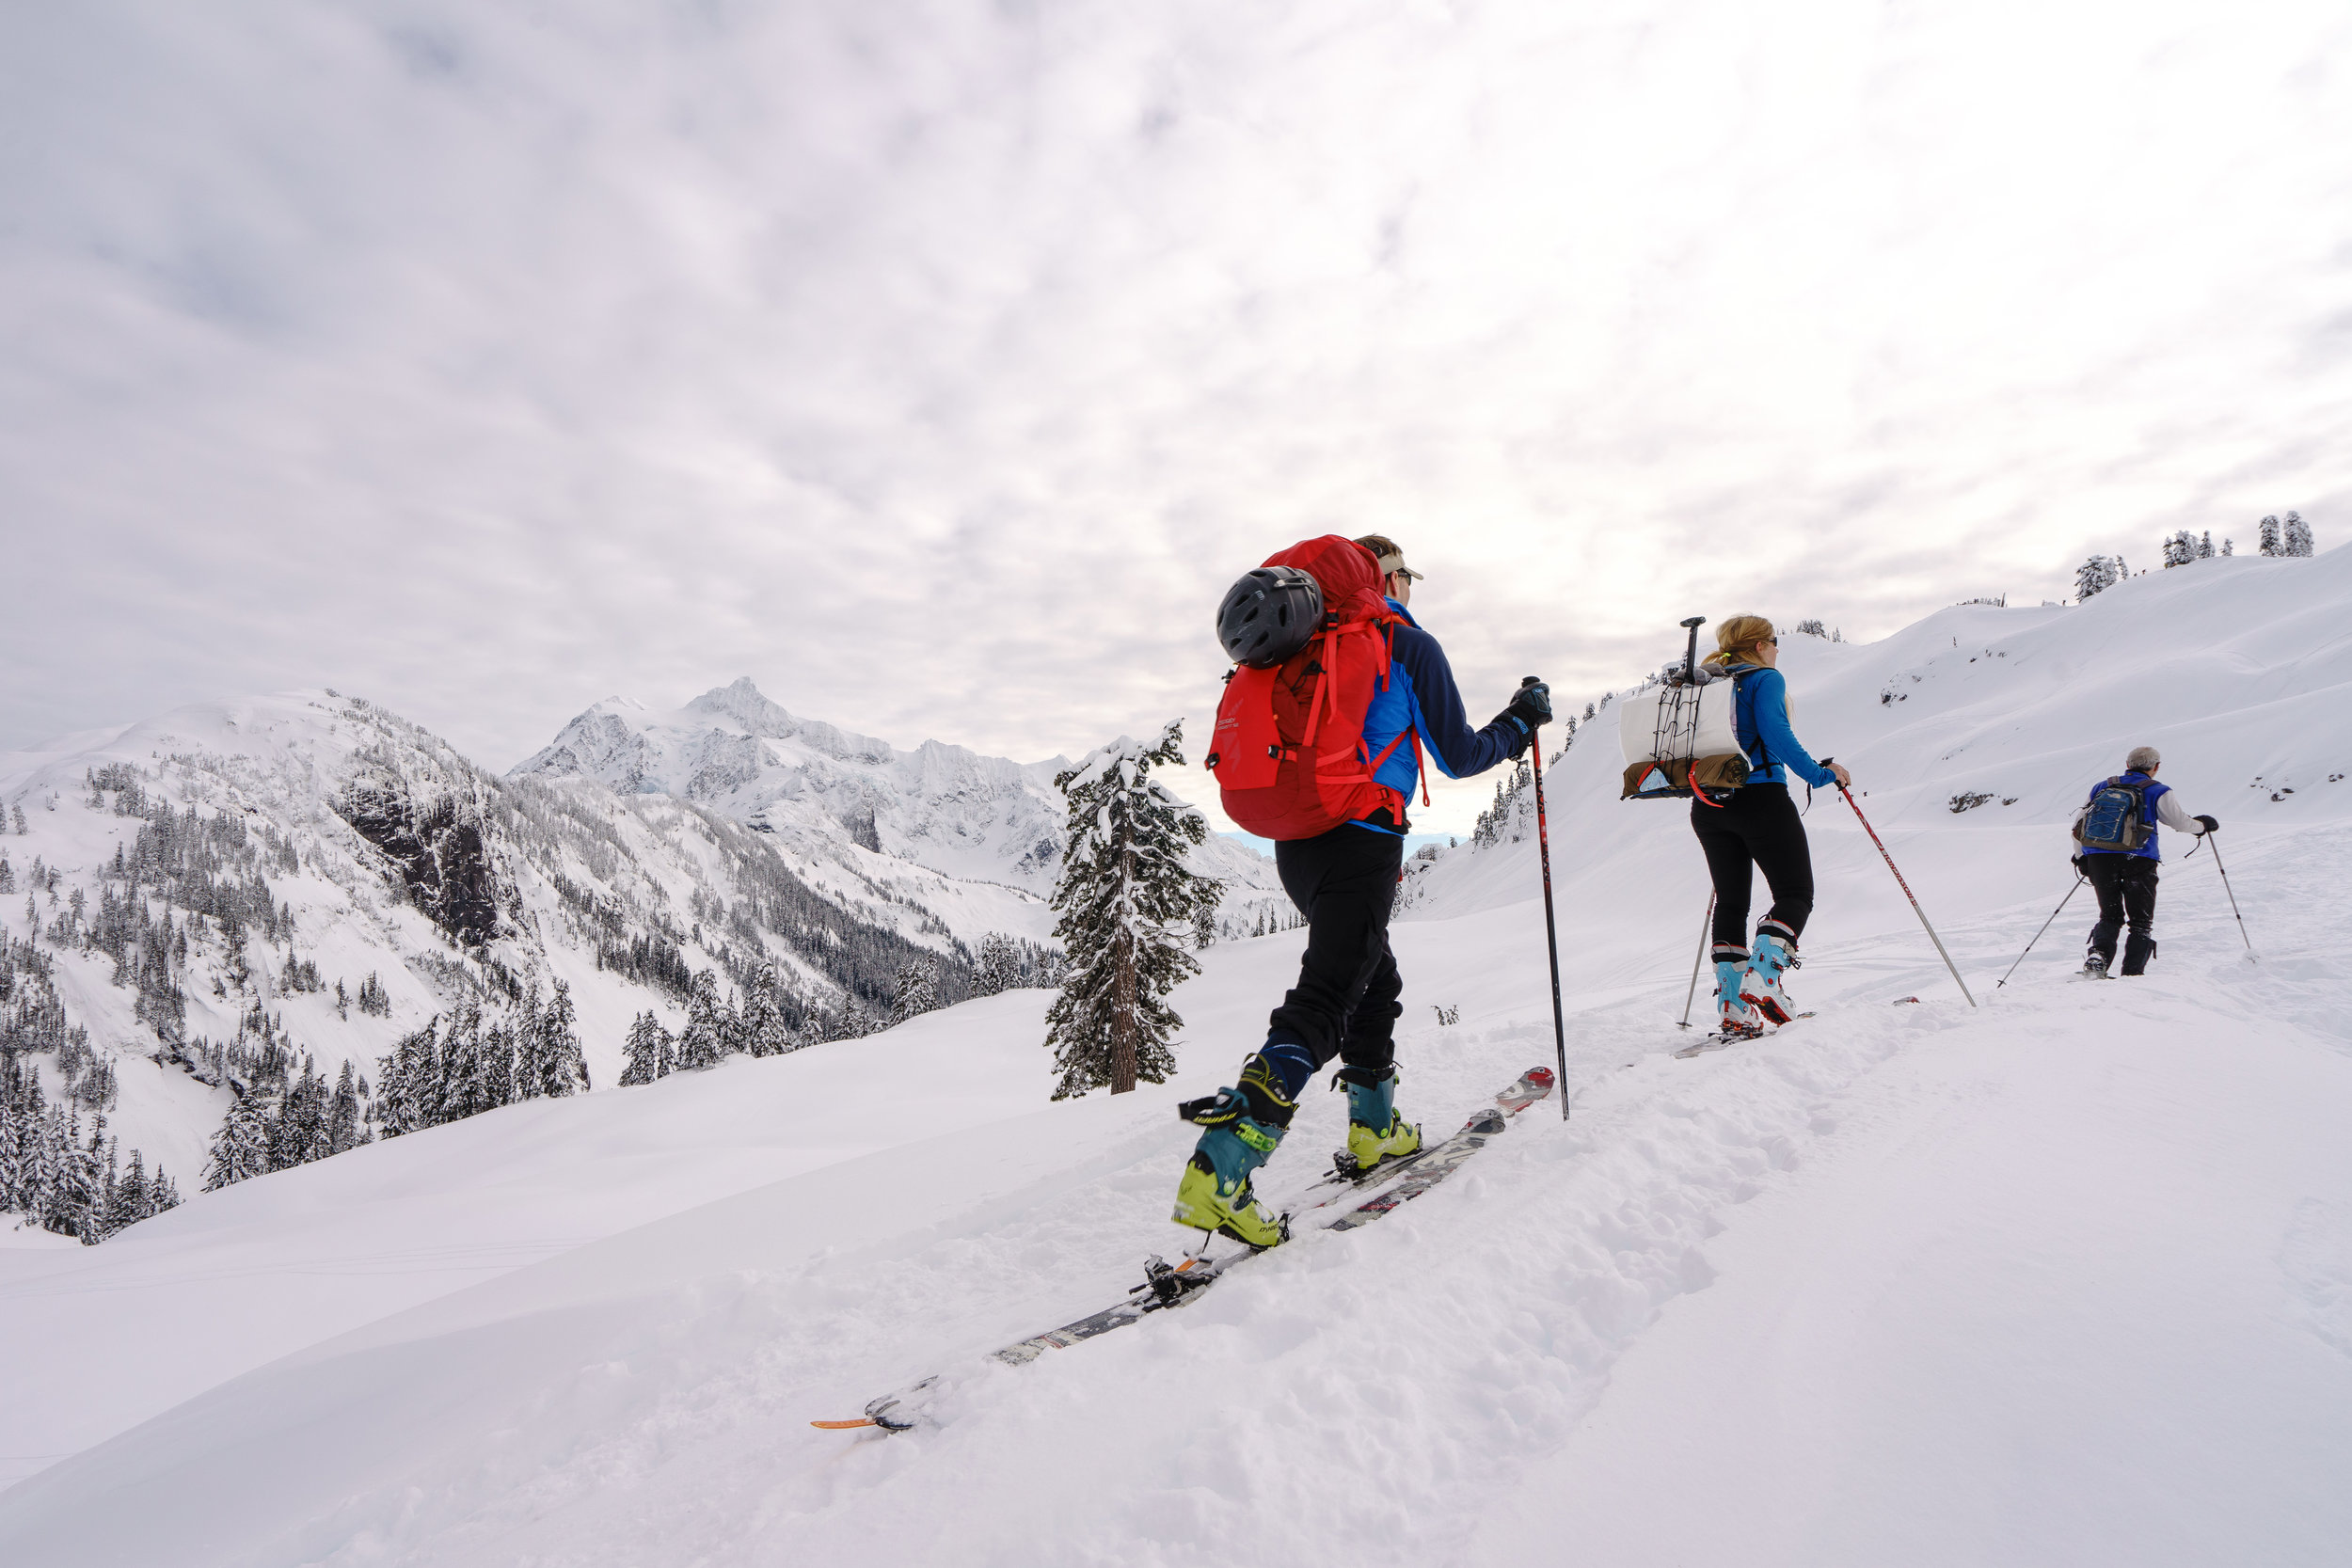 I snowshoed and others in my group skied. Choose your own adventure!